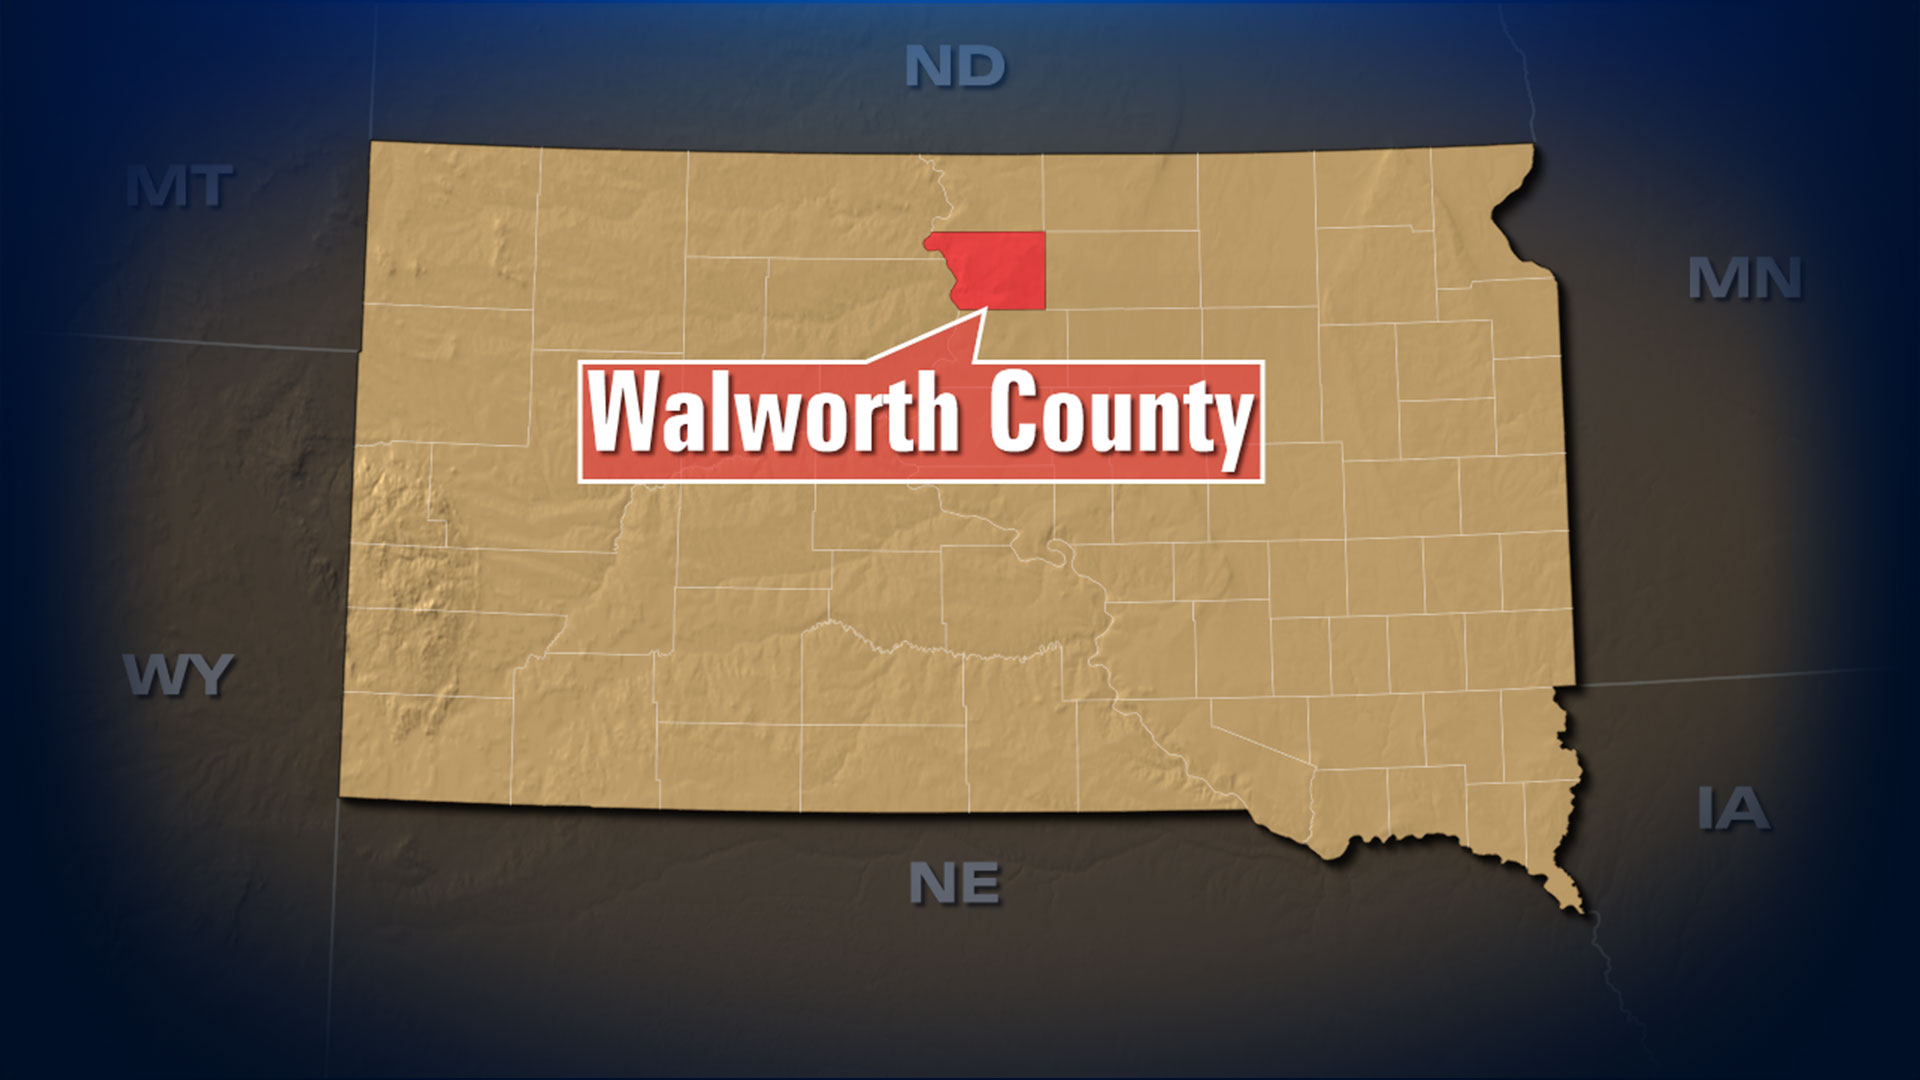 KELO Walworth County